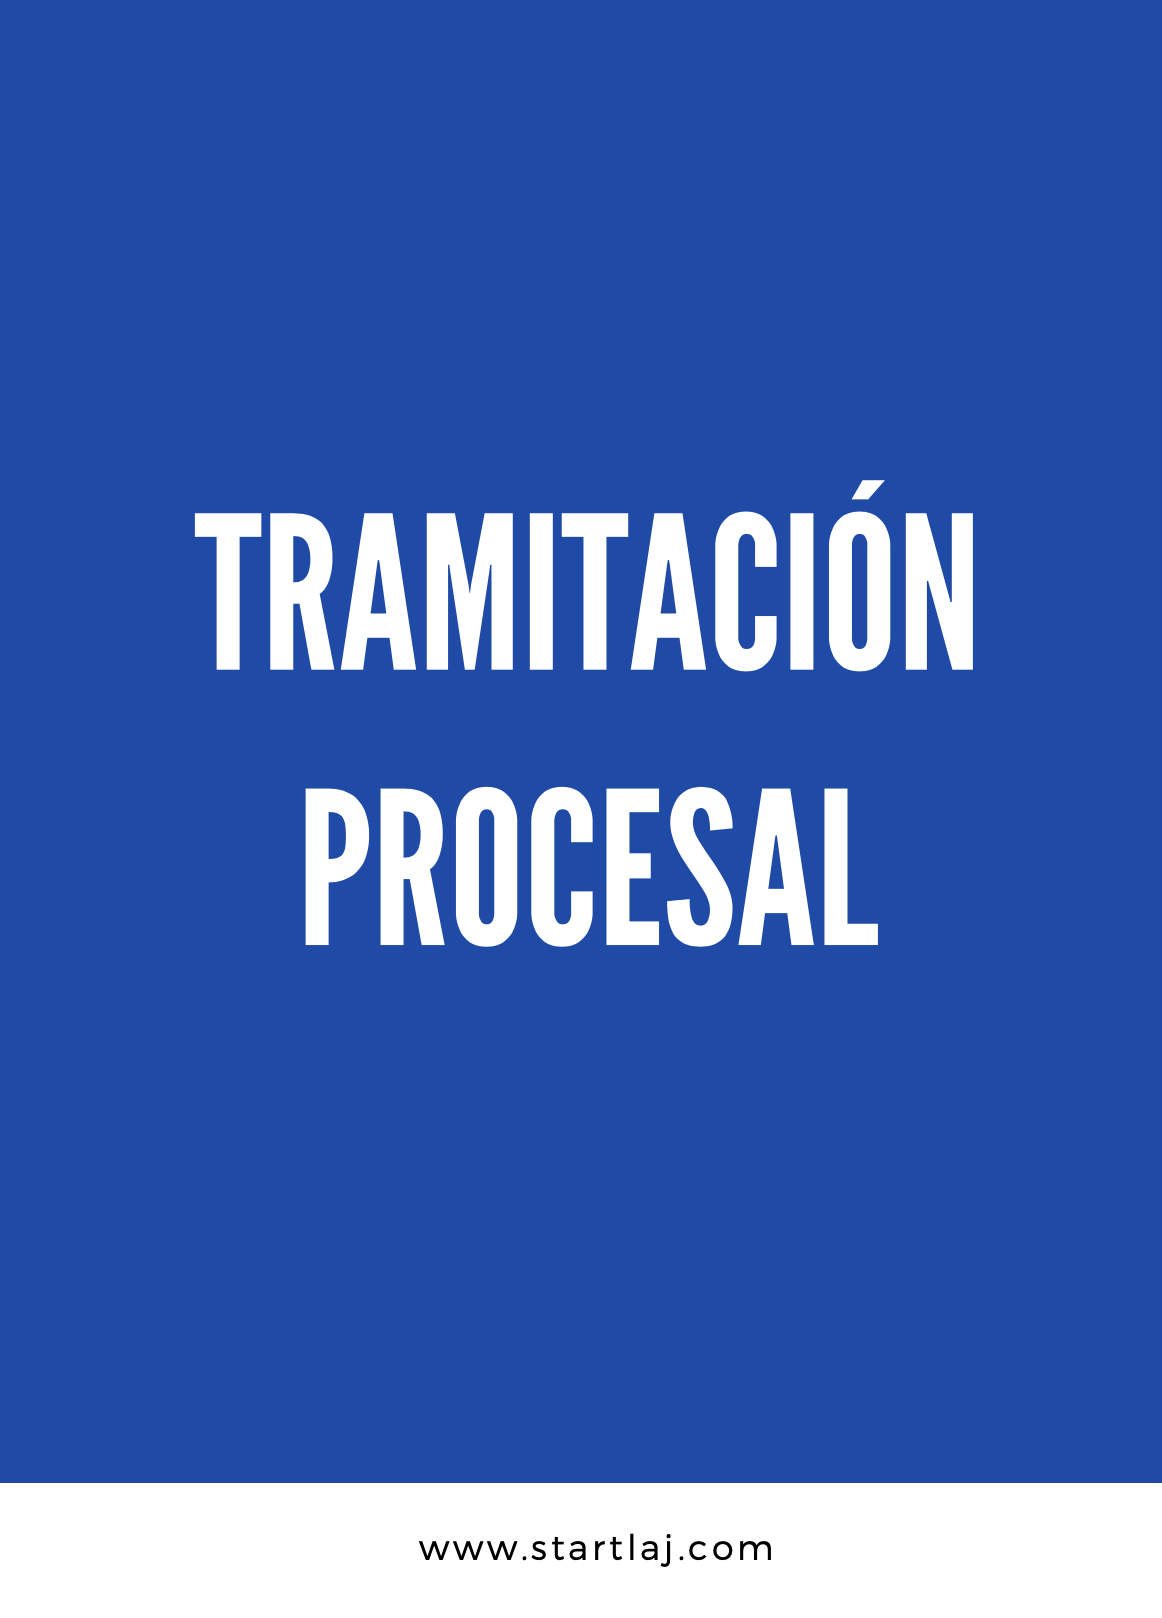 Plantilla Test Examen Word Tramitación 18 Julio 2020